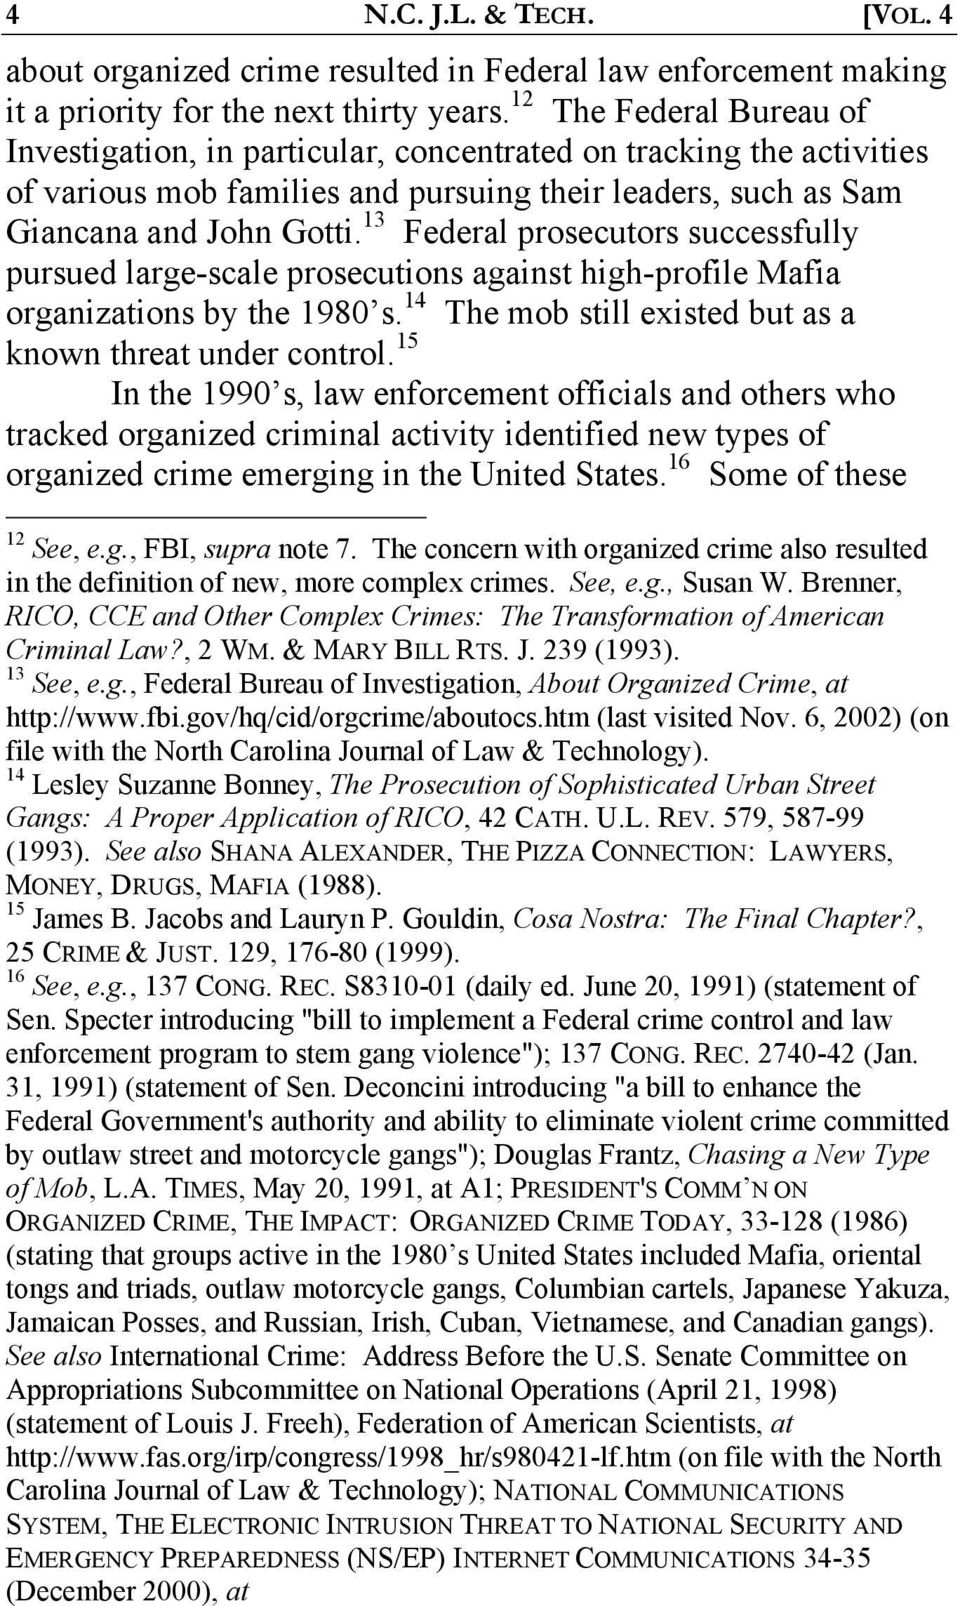 13 Federal prosecutors successfully pursued large-scale prosecutions against high-profile Mafia organizations by the 1980 s. 14 The mob still existed but as a known threat under control.